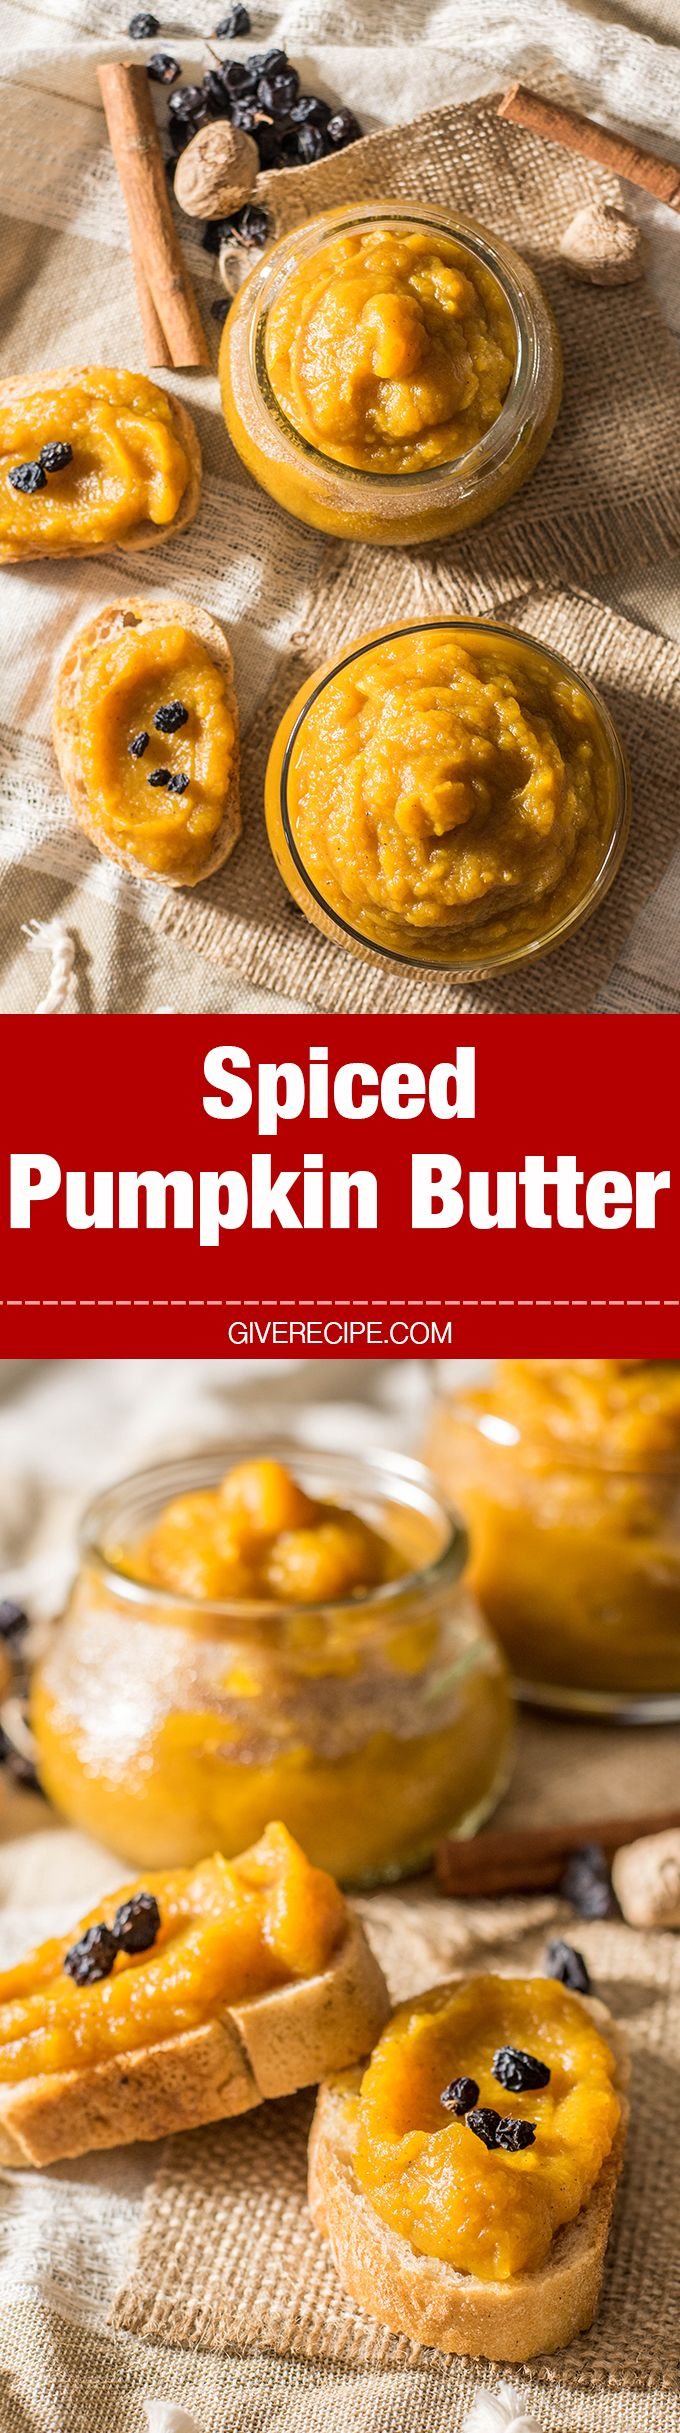 Spiced Pumpkin Butter is perfect for the fall season. Spread it on bread at breakfast or use it in cakes or cookies. Or just eat from the jar with a spoon as a dessert.